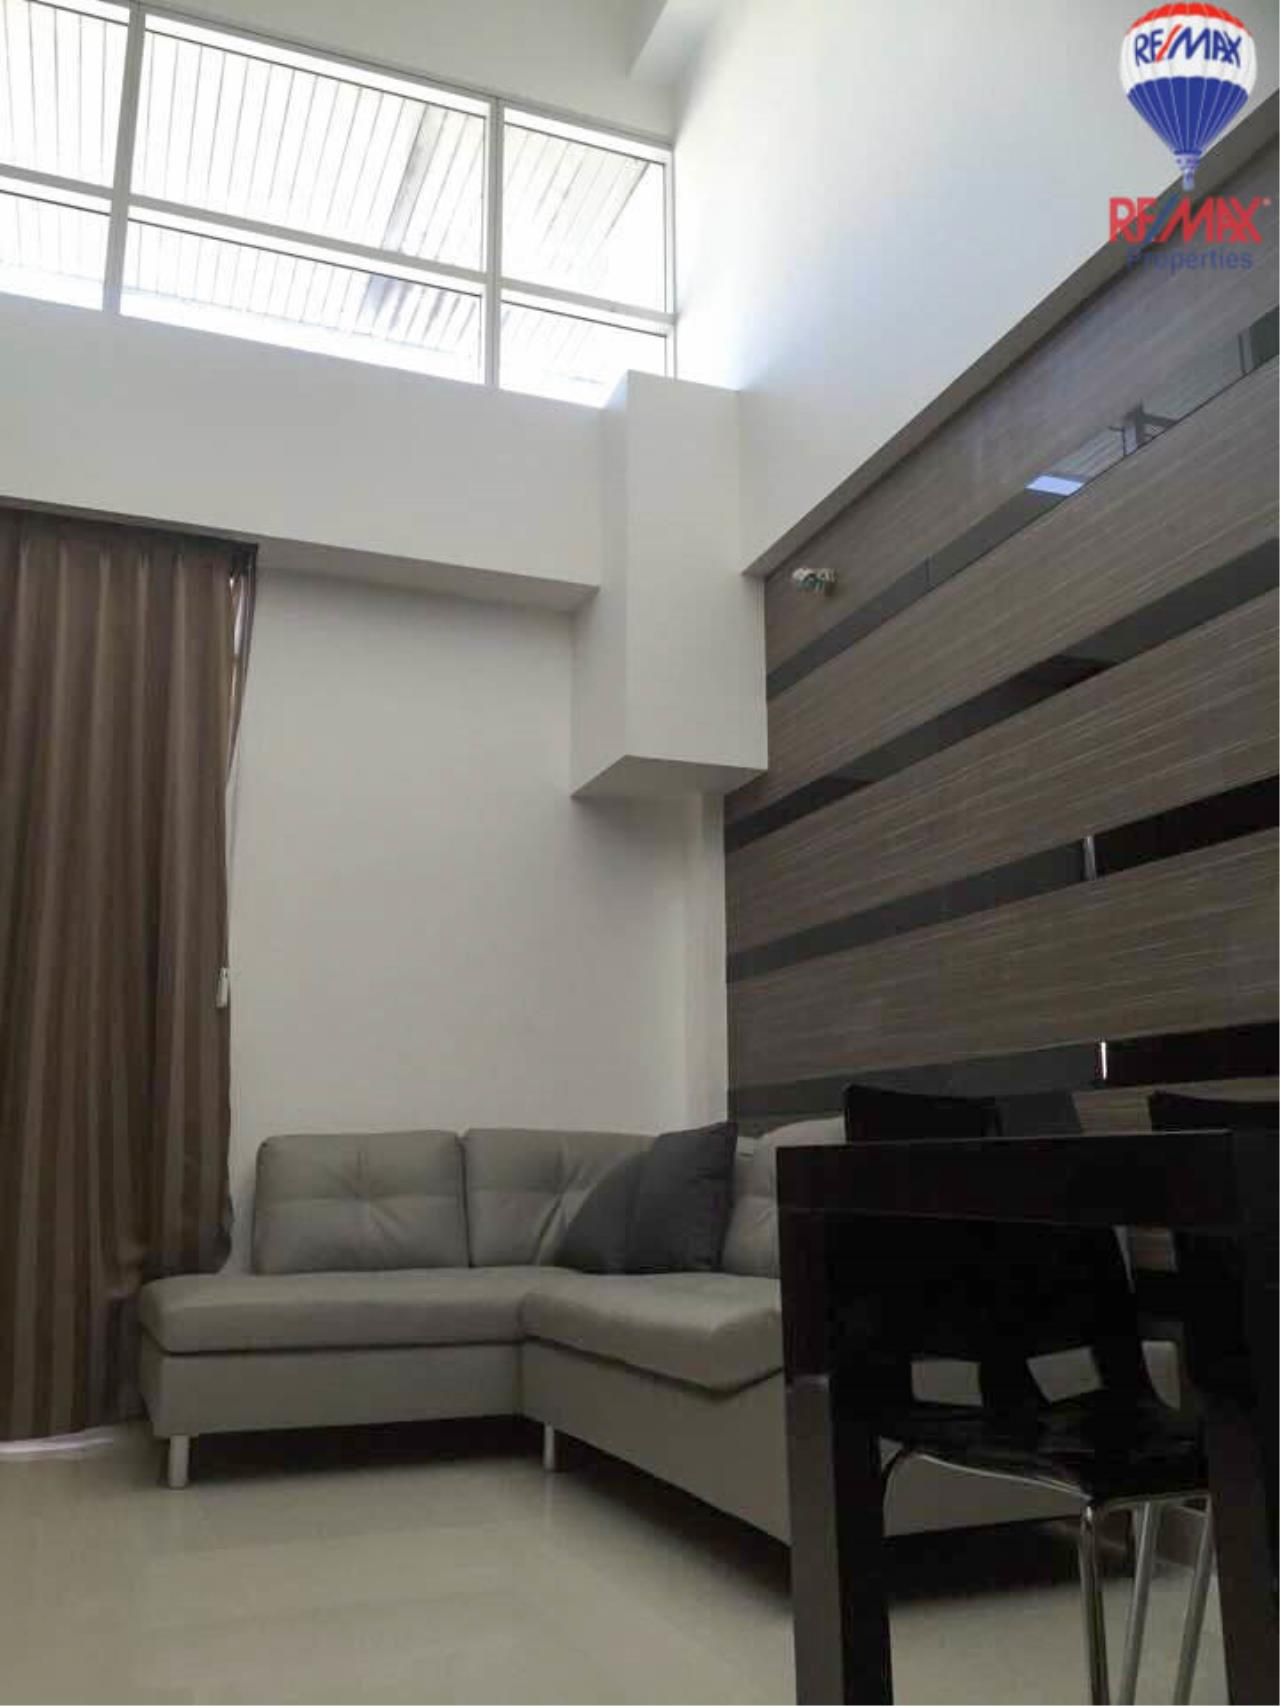 RE/MAX Properties Agency's 2 Bedrooms Duplex style for rent at The Trendy condo 1